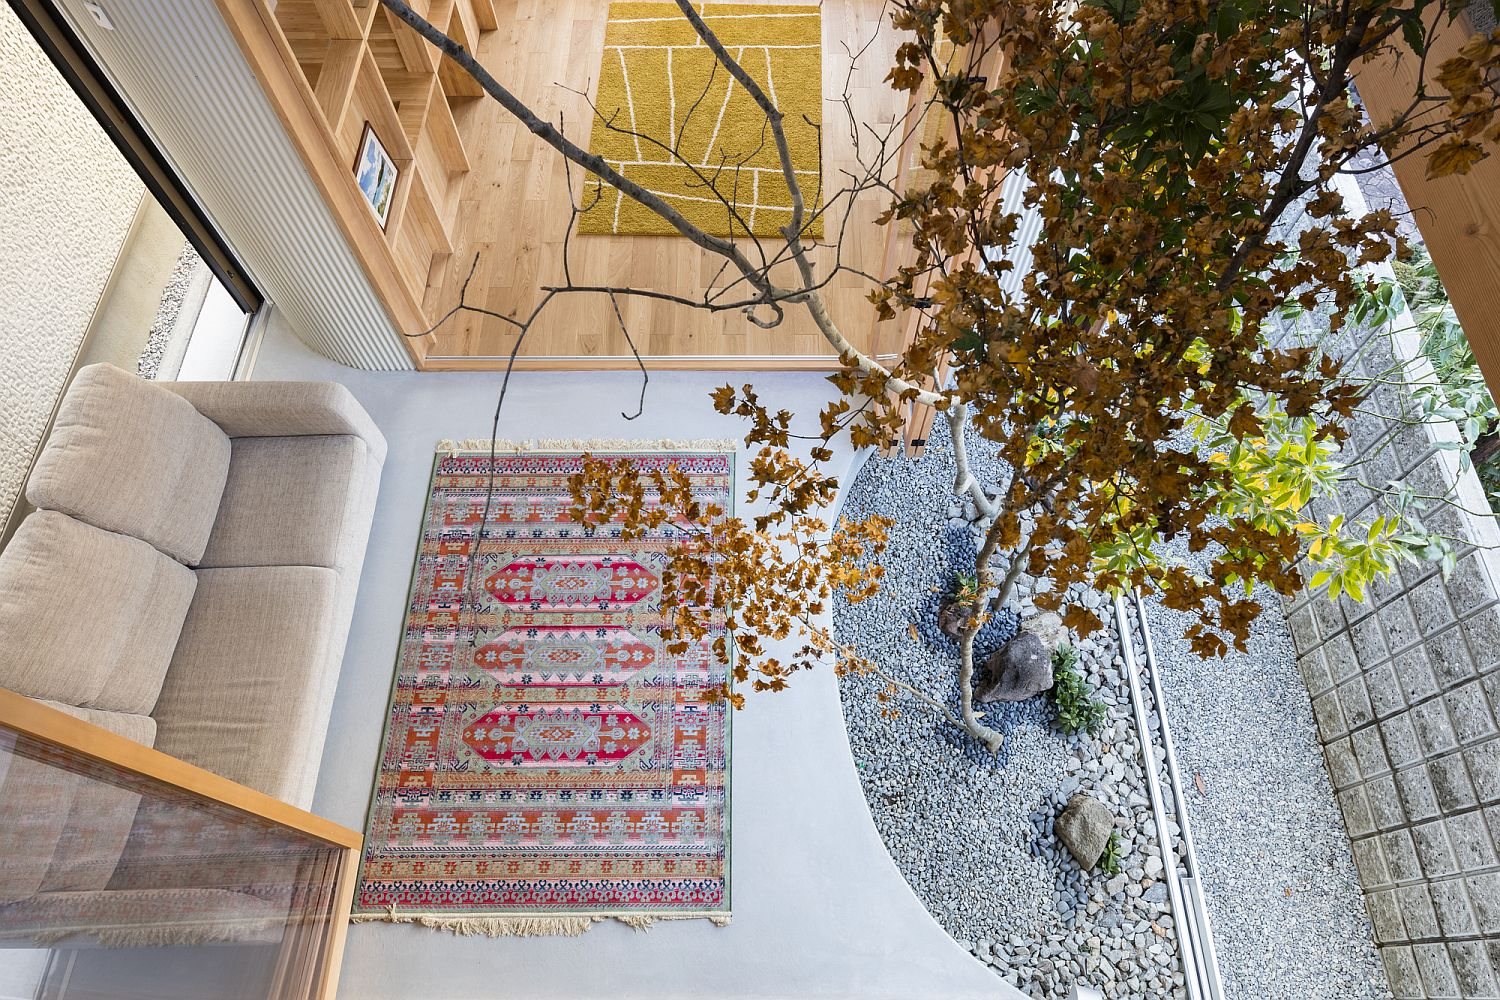 Stylish dry garden inside the house viewed from above